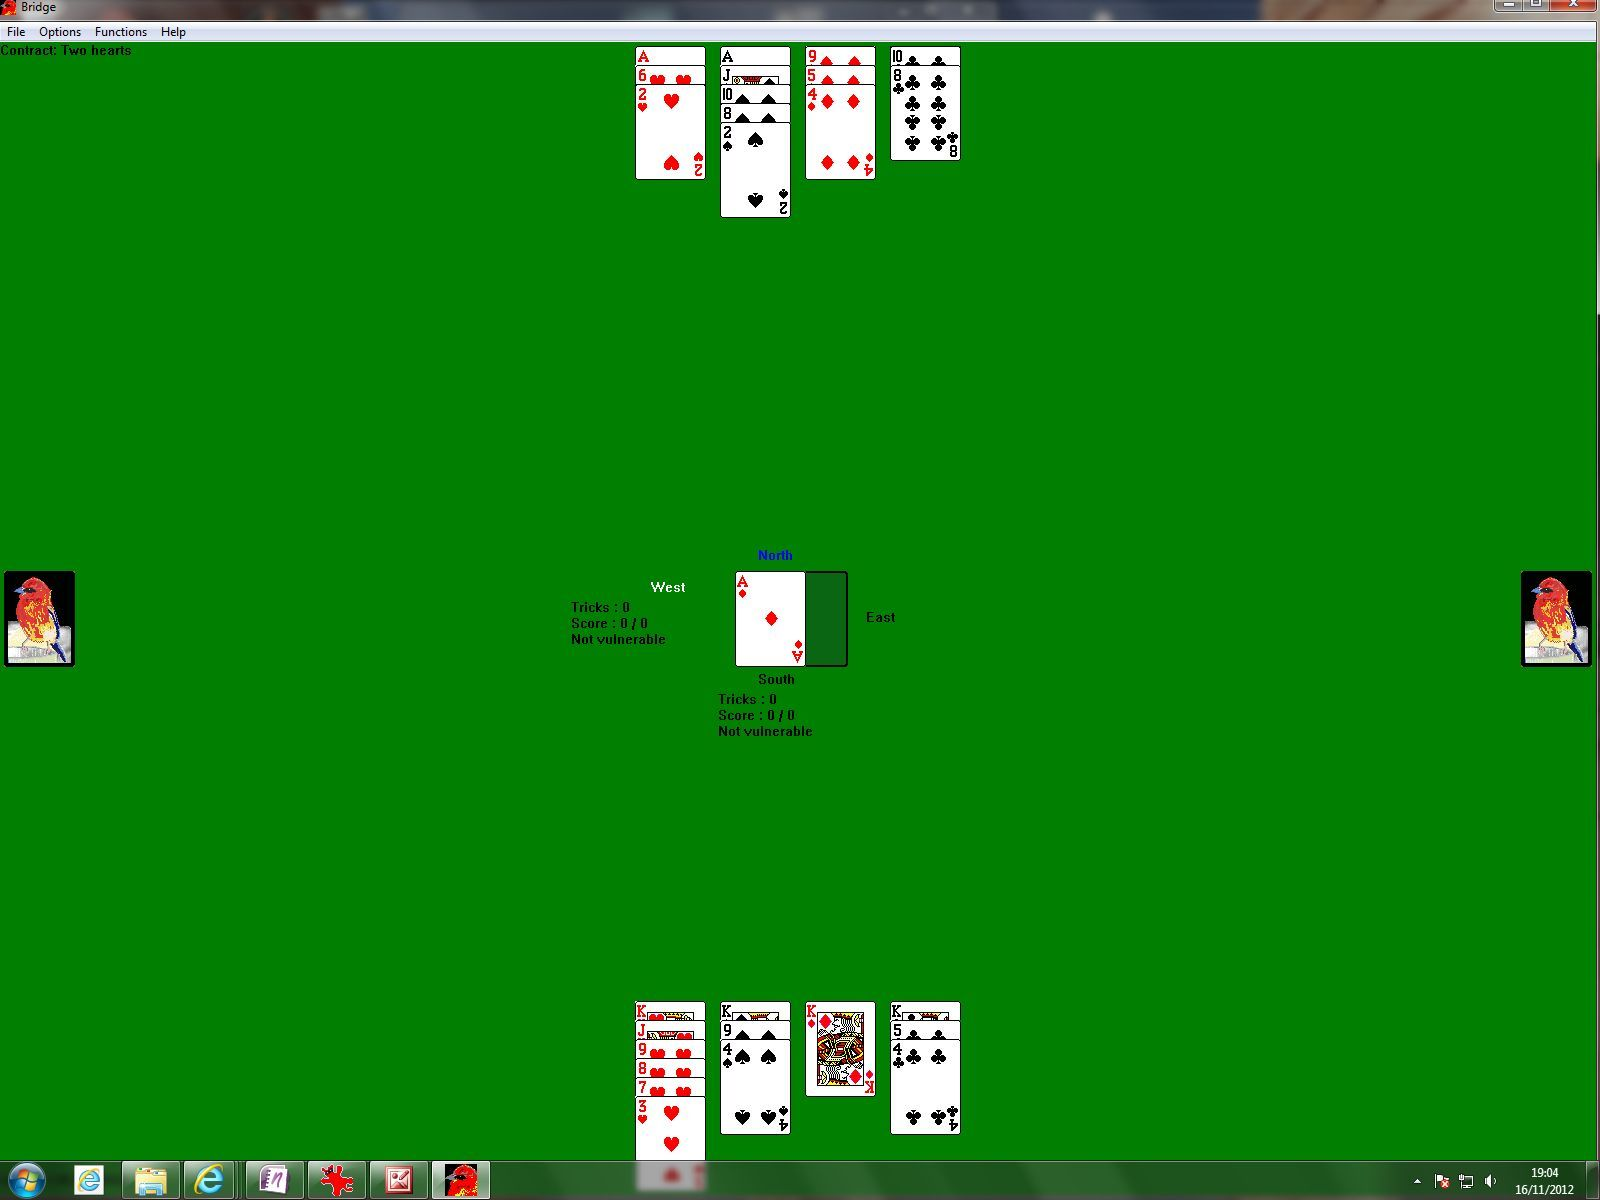 WolfBridge Windows Here the player has successfully bid a contract and partner's hand is displayed as dummy